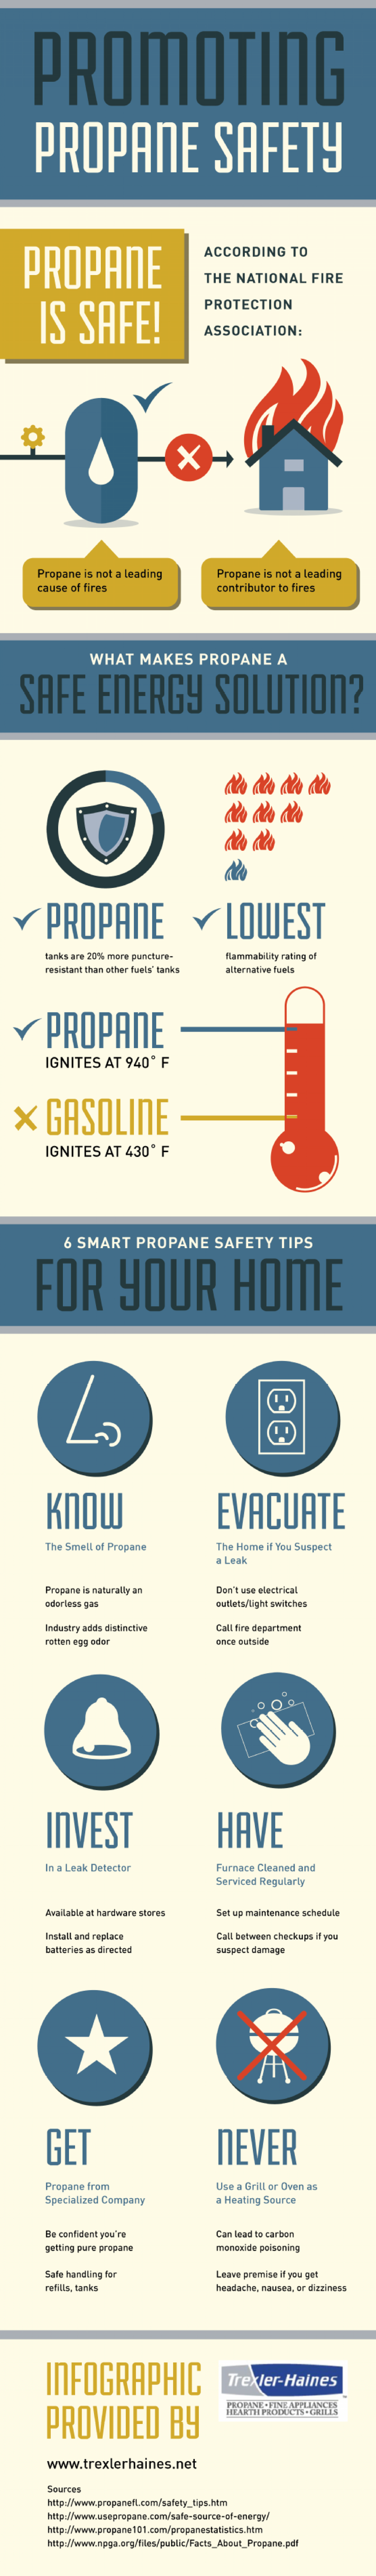 Promoting Propane Safety  Infographic